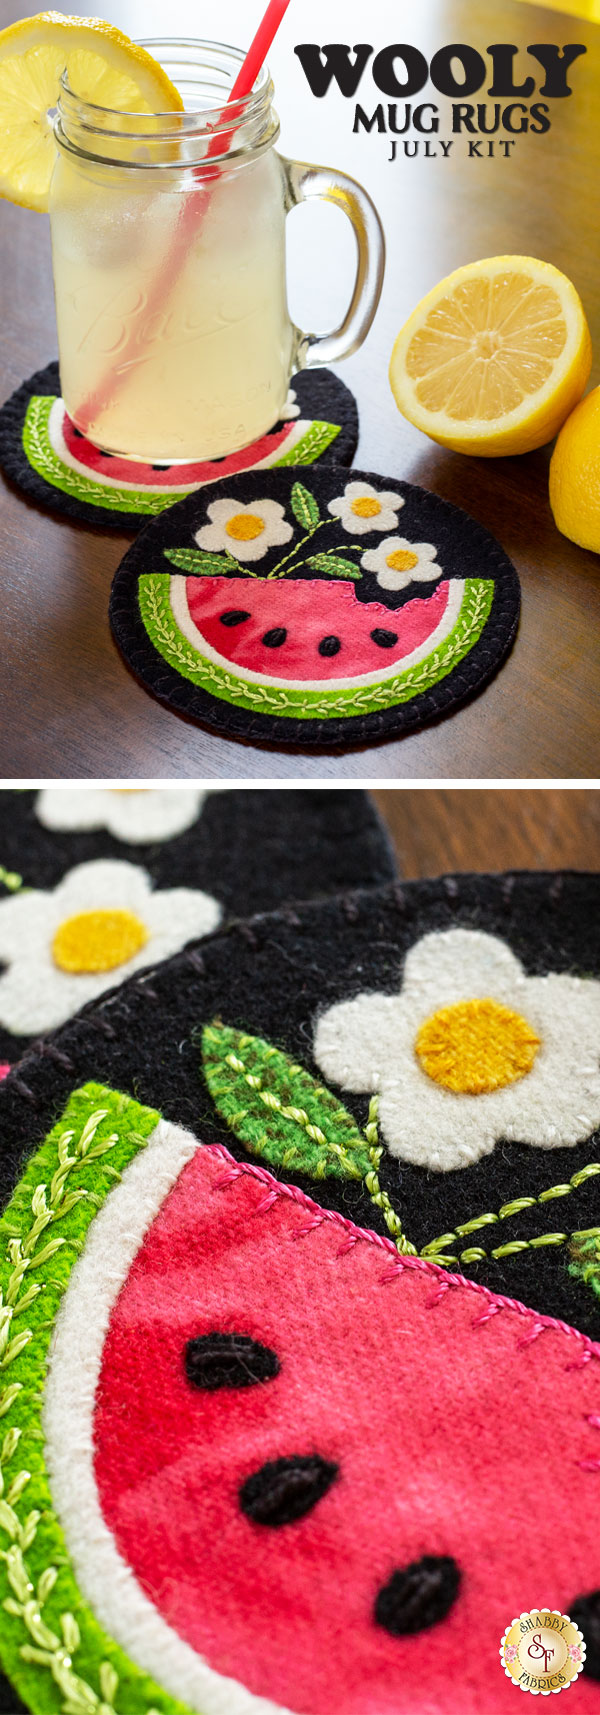 Photo of july wooly mug rugs with a glass of lemonade on the table, close up image of watermelon coasters below it.